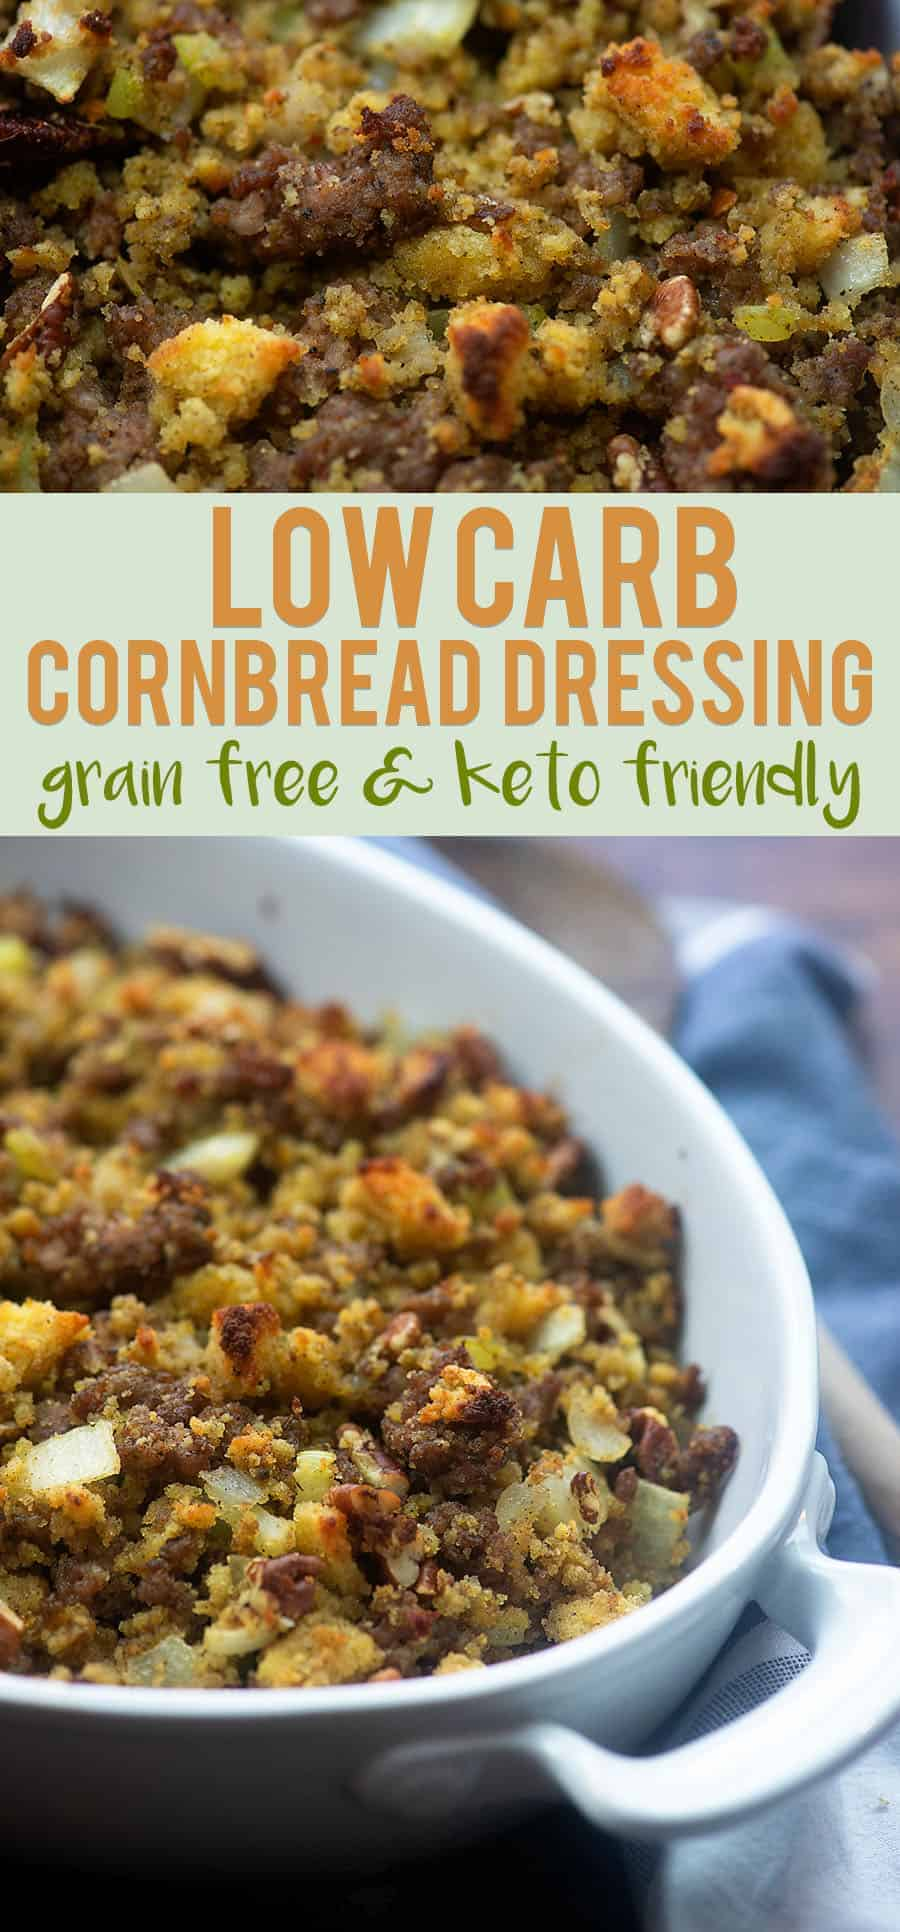 "Low Carb ""Cornbread"" Dressing! Keto friendly and perfect for Thanksgiving! #lowcarb #keto #cornbread #stuffing #thanksgiving"